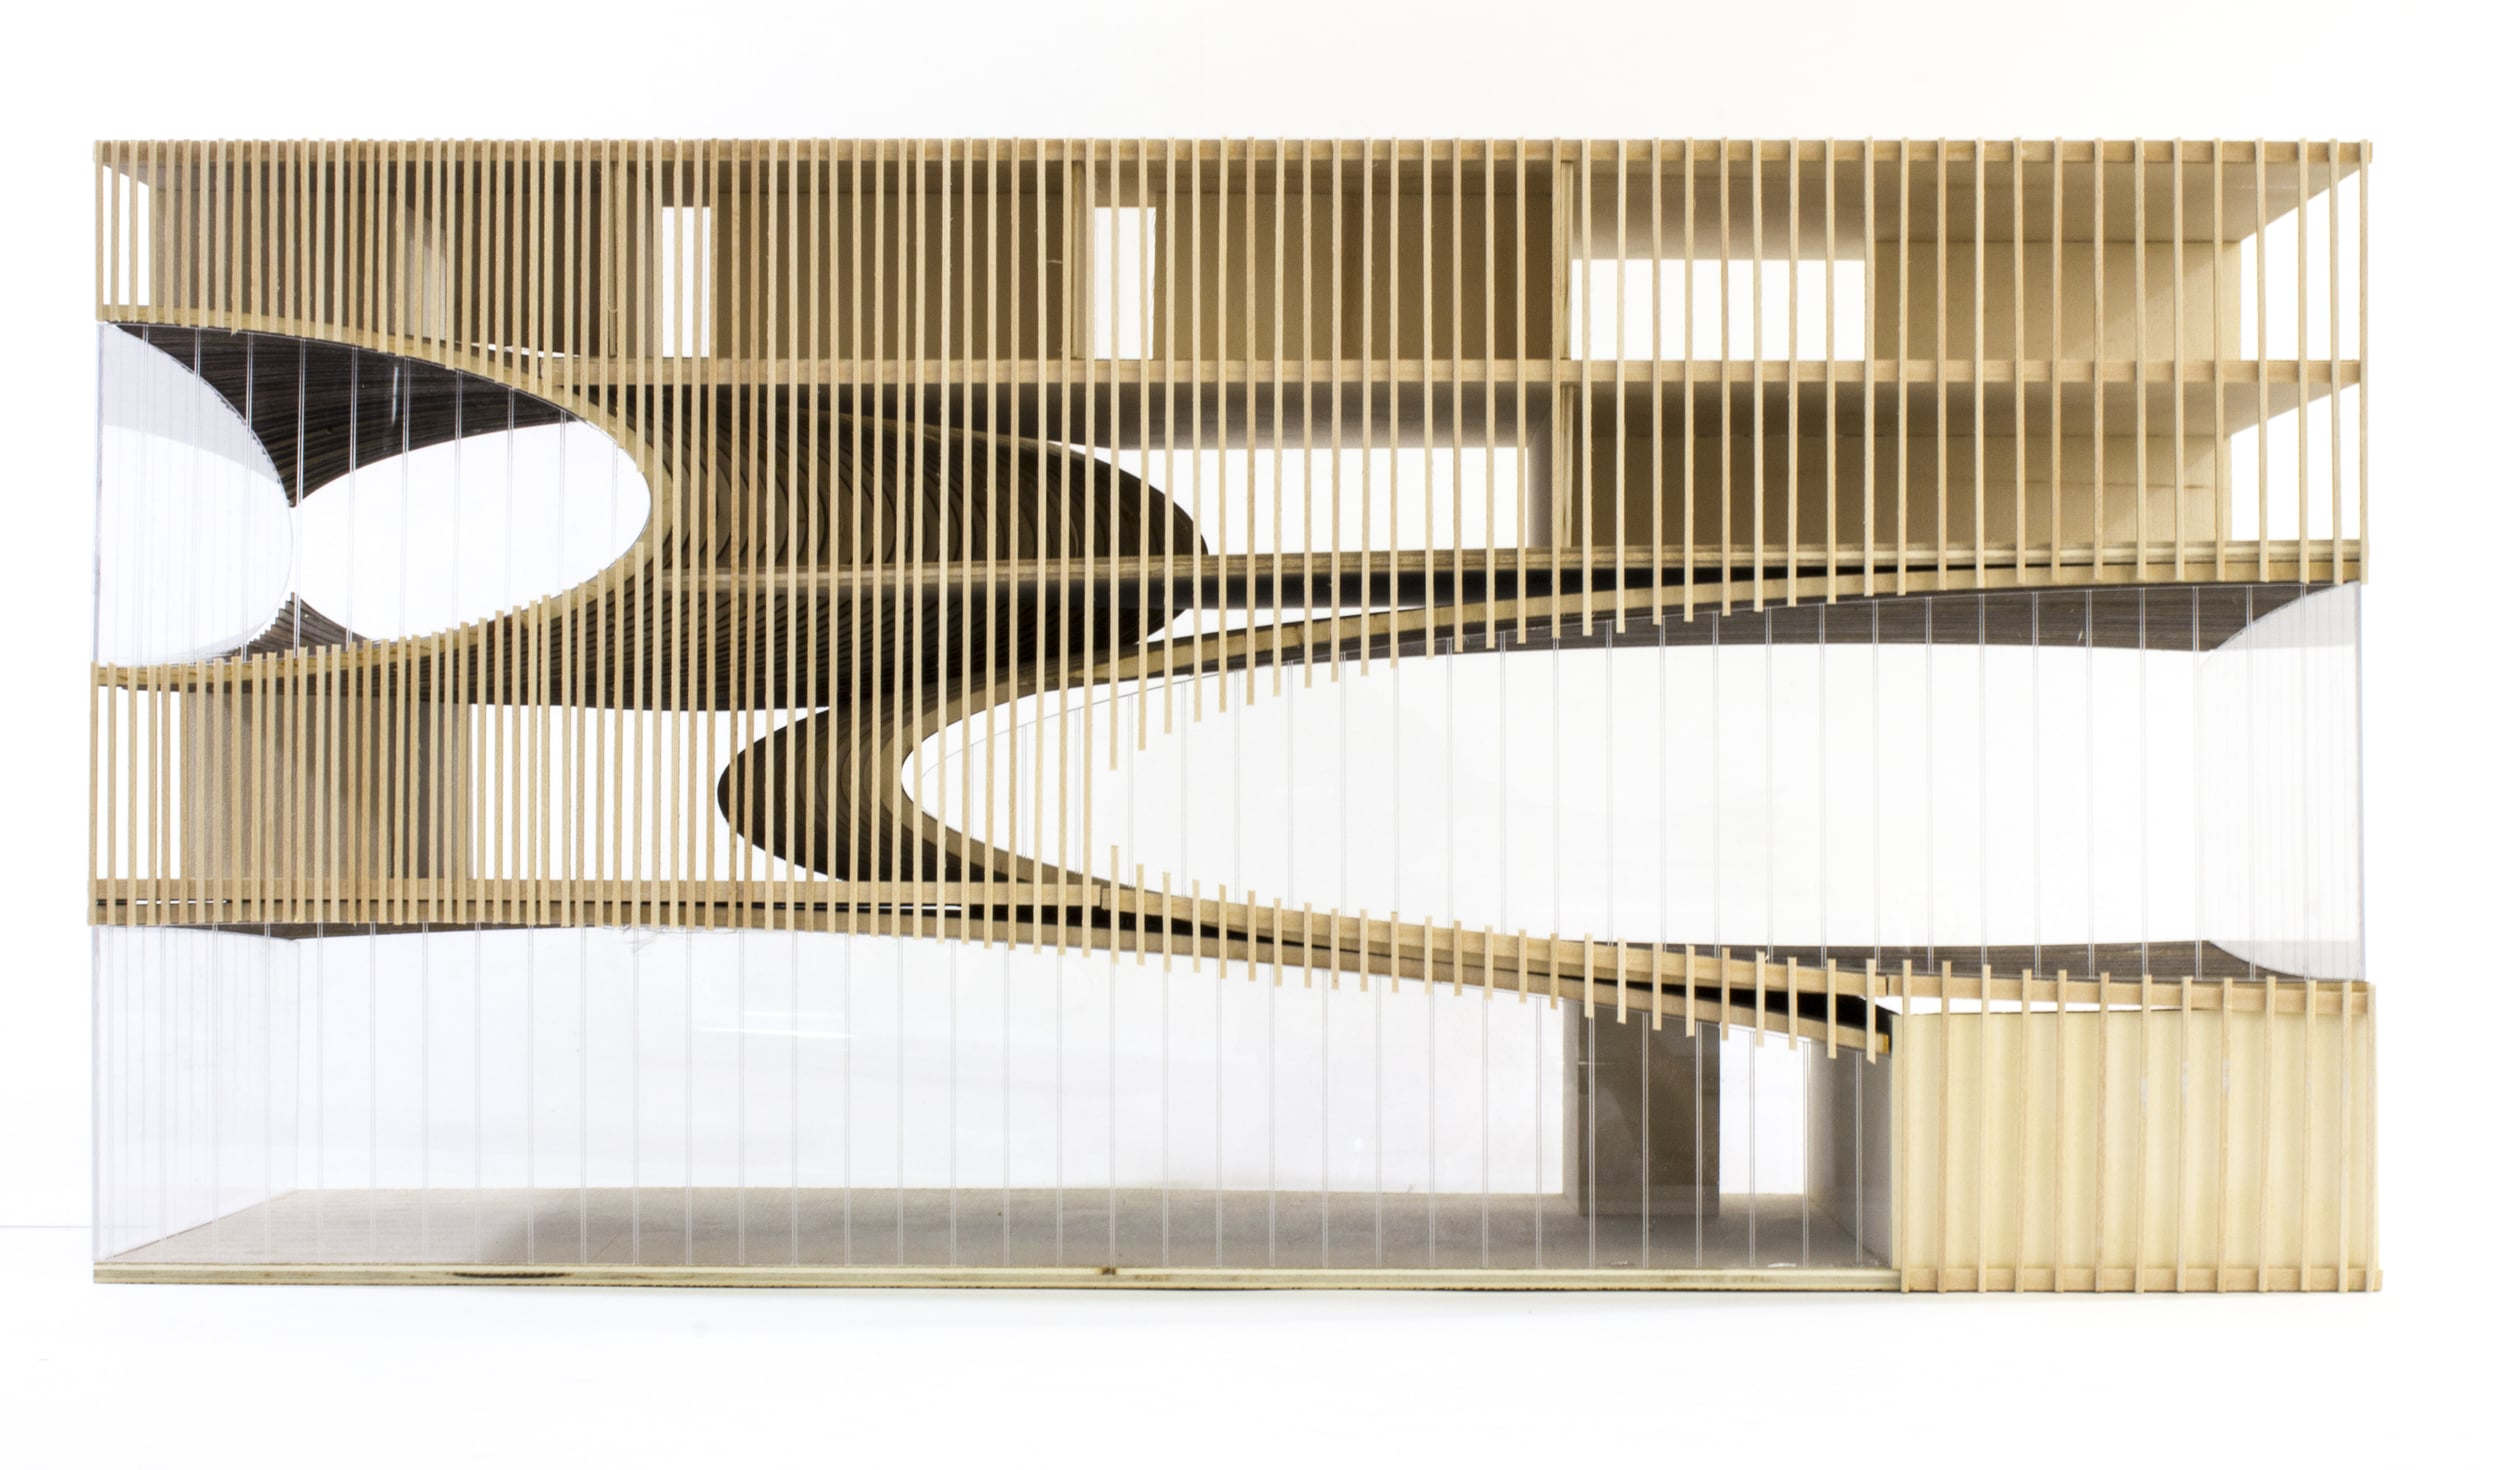 "Sectional model at 3/16"" = 1'. Ellipsoids are constructed from laminated plywood. Vertical walls and exterior louvers are constructed from basswood."